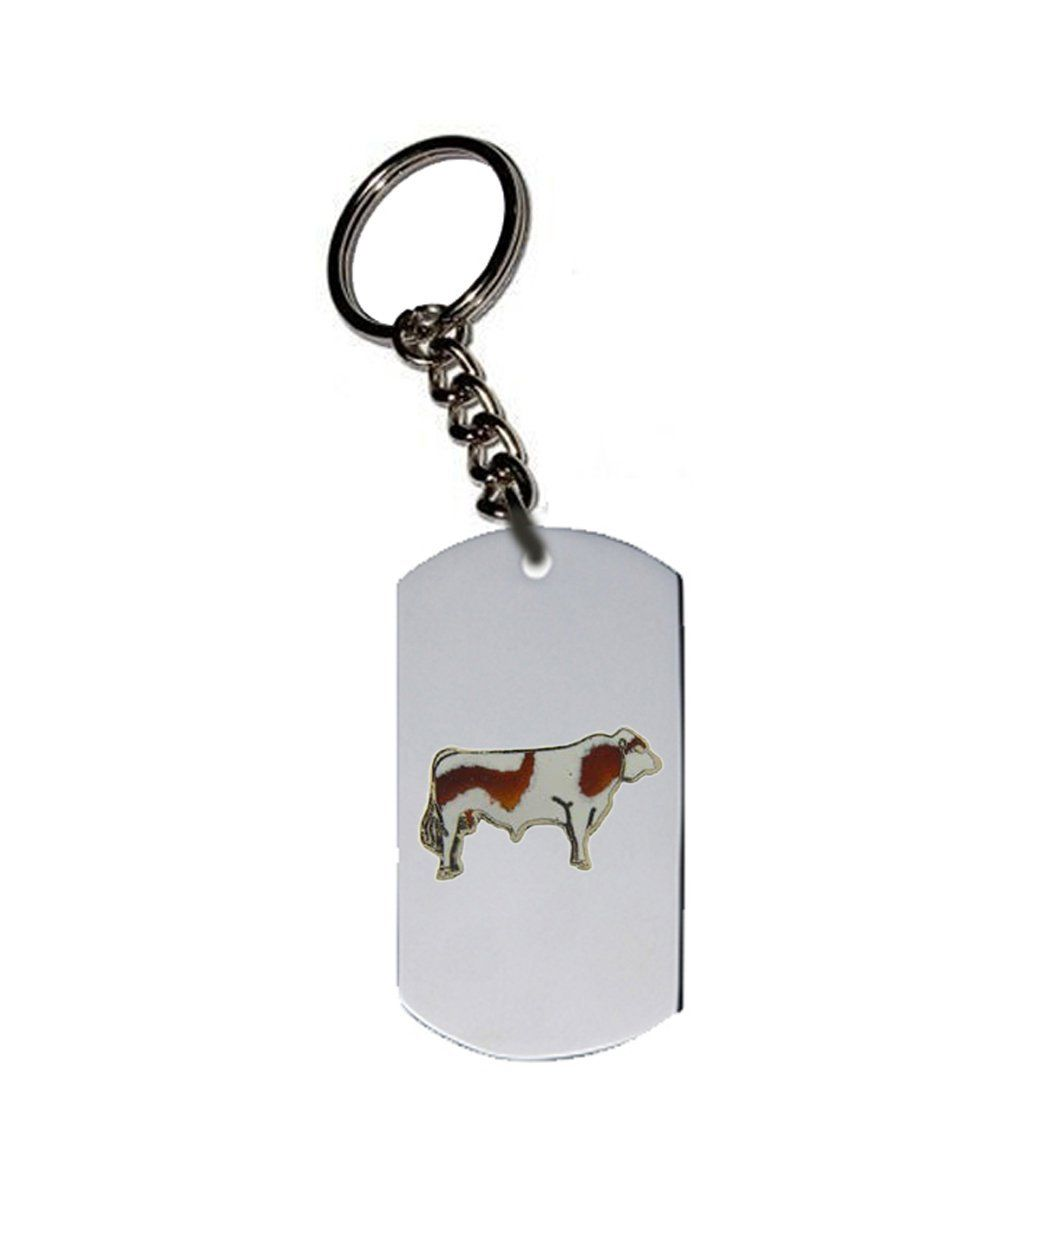 Emblem Key Chain W Metal Ring Animal Cattle Bulls And Buffalo Simmental Bull Wow I Love This Check It Out Dog Tags Pet Cat Accessories Metal Rings